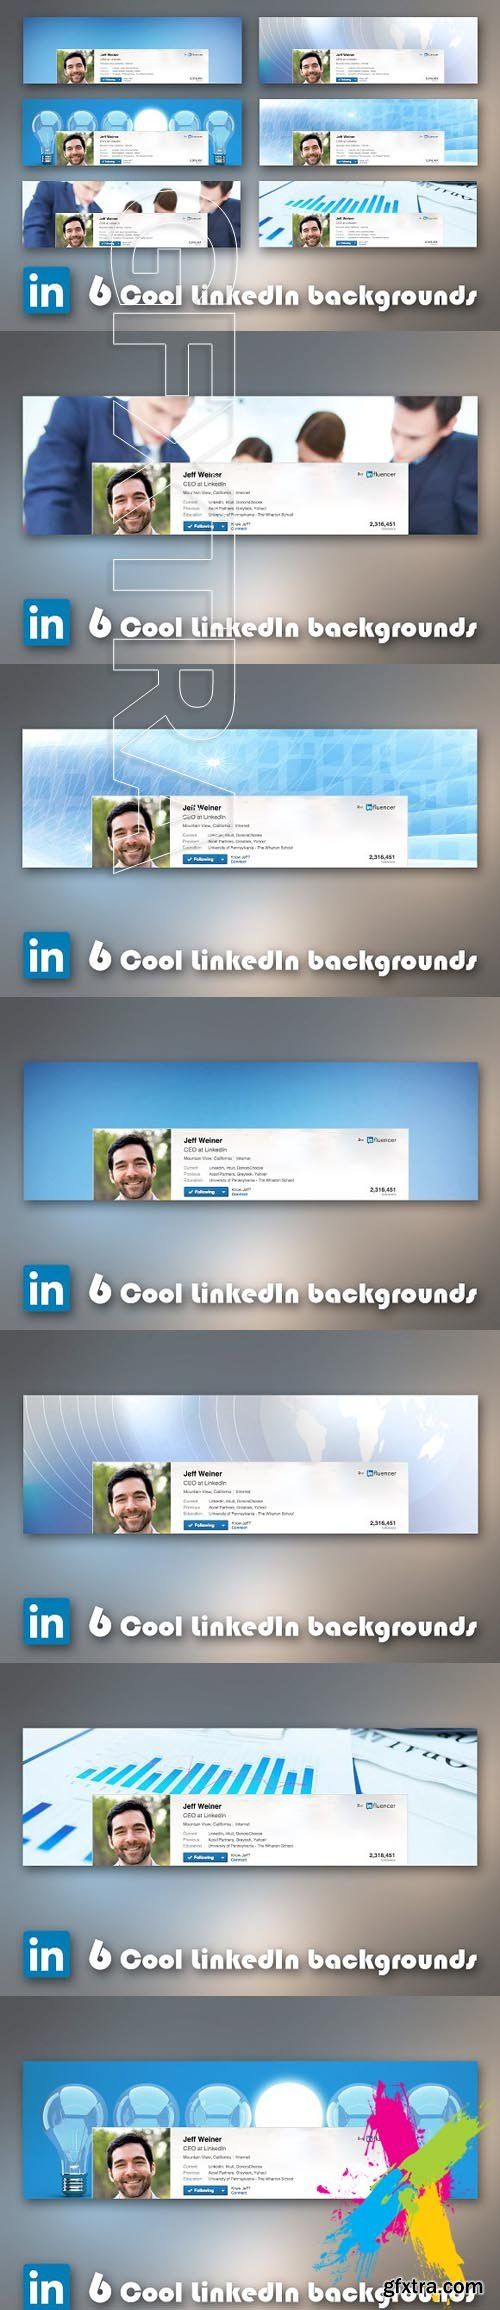 Cm  6 Cool Business Linkedin Backgrounds 1592051